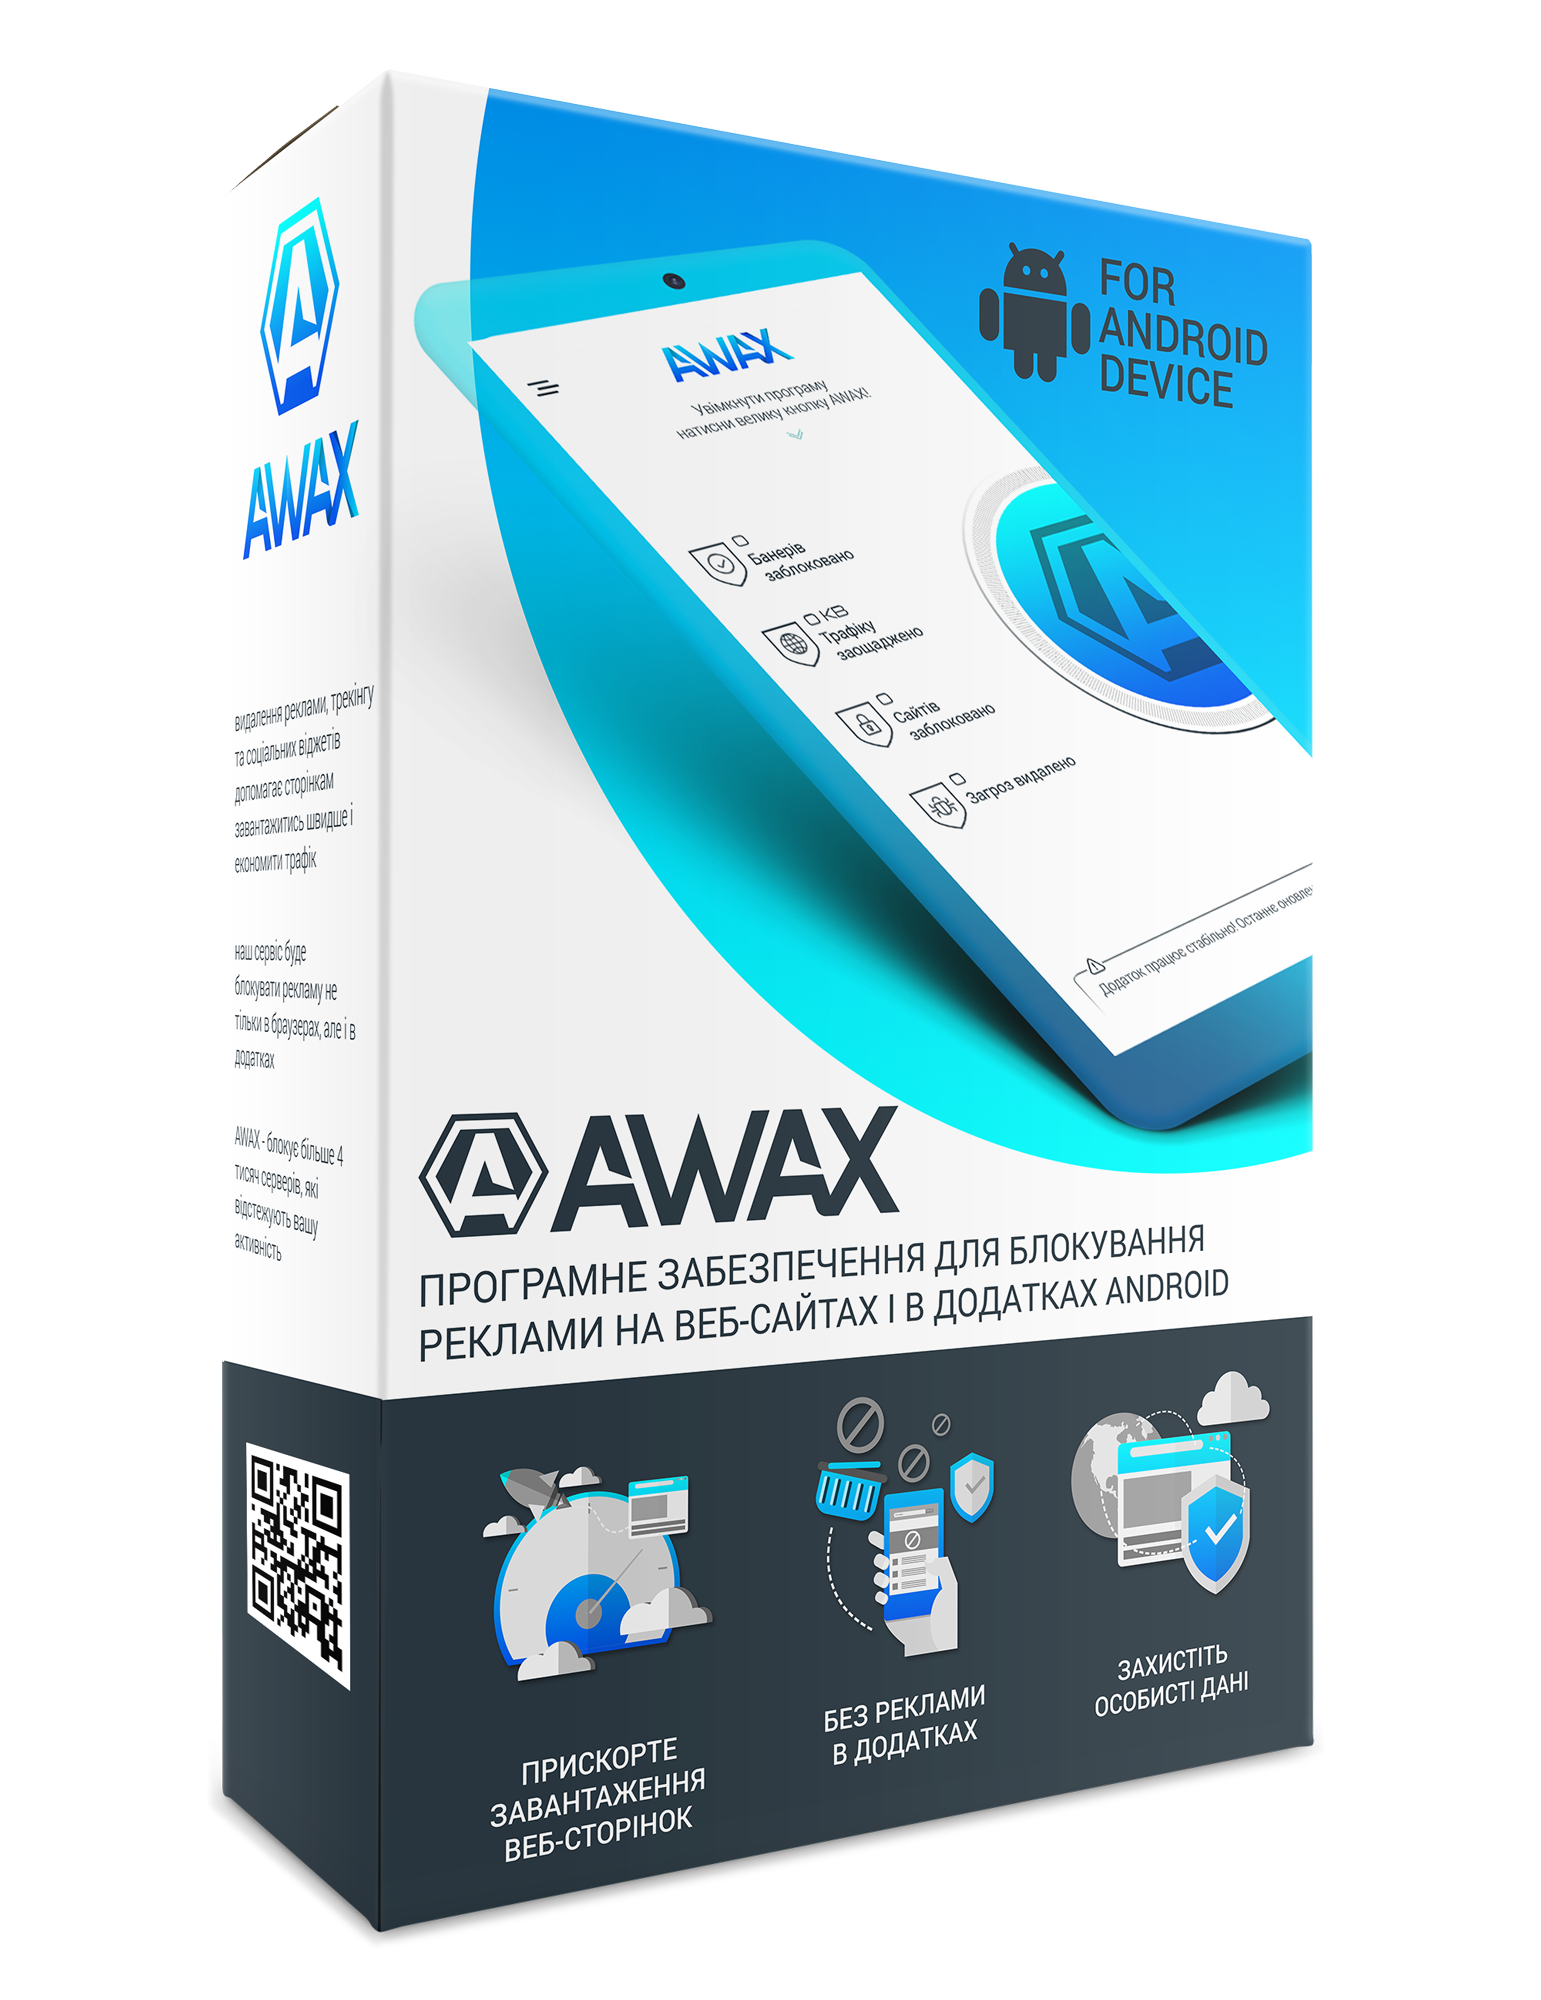 AWAX for Android for 1 device for 1 year REG FREE